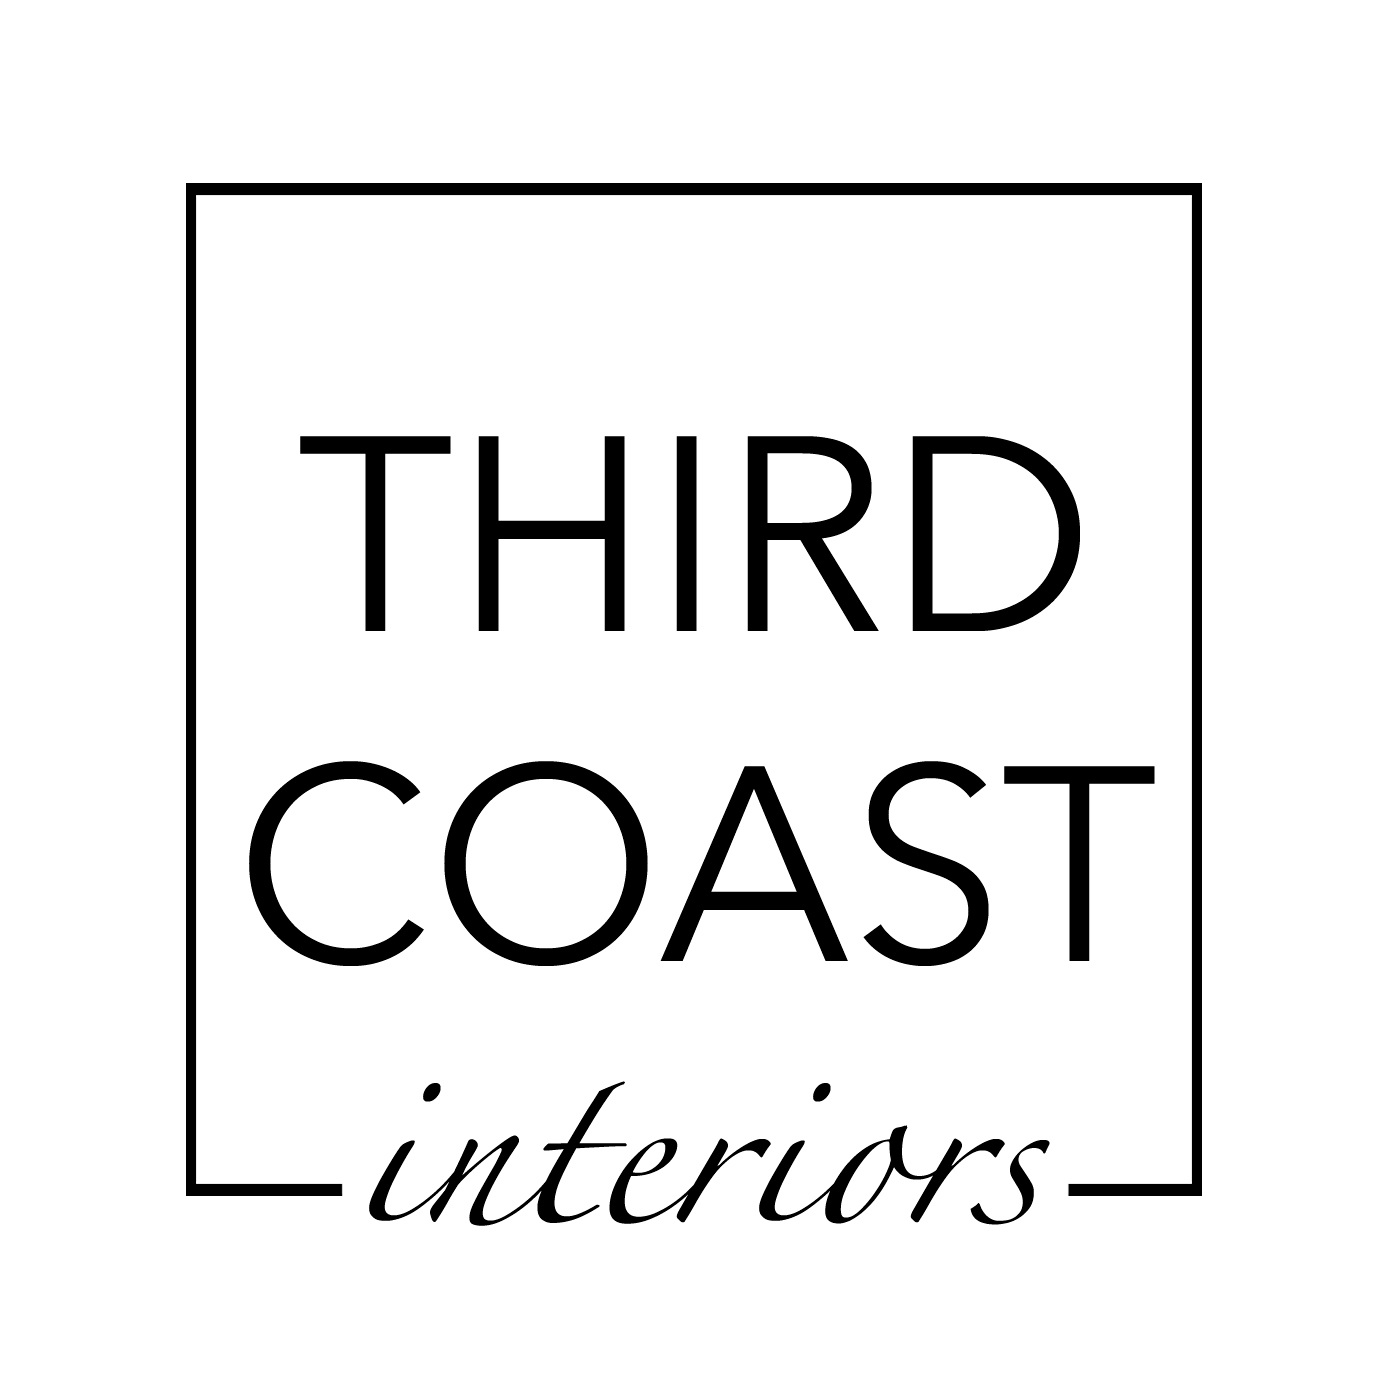 Third Coast Interiors